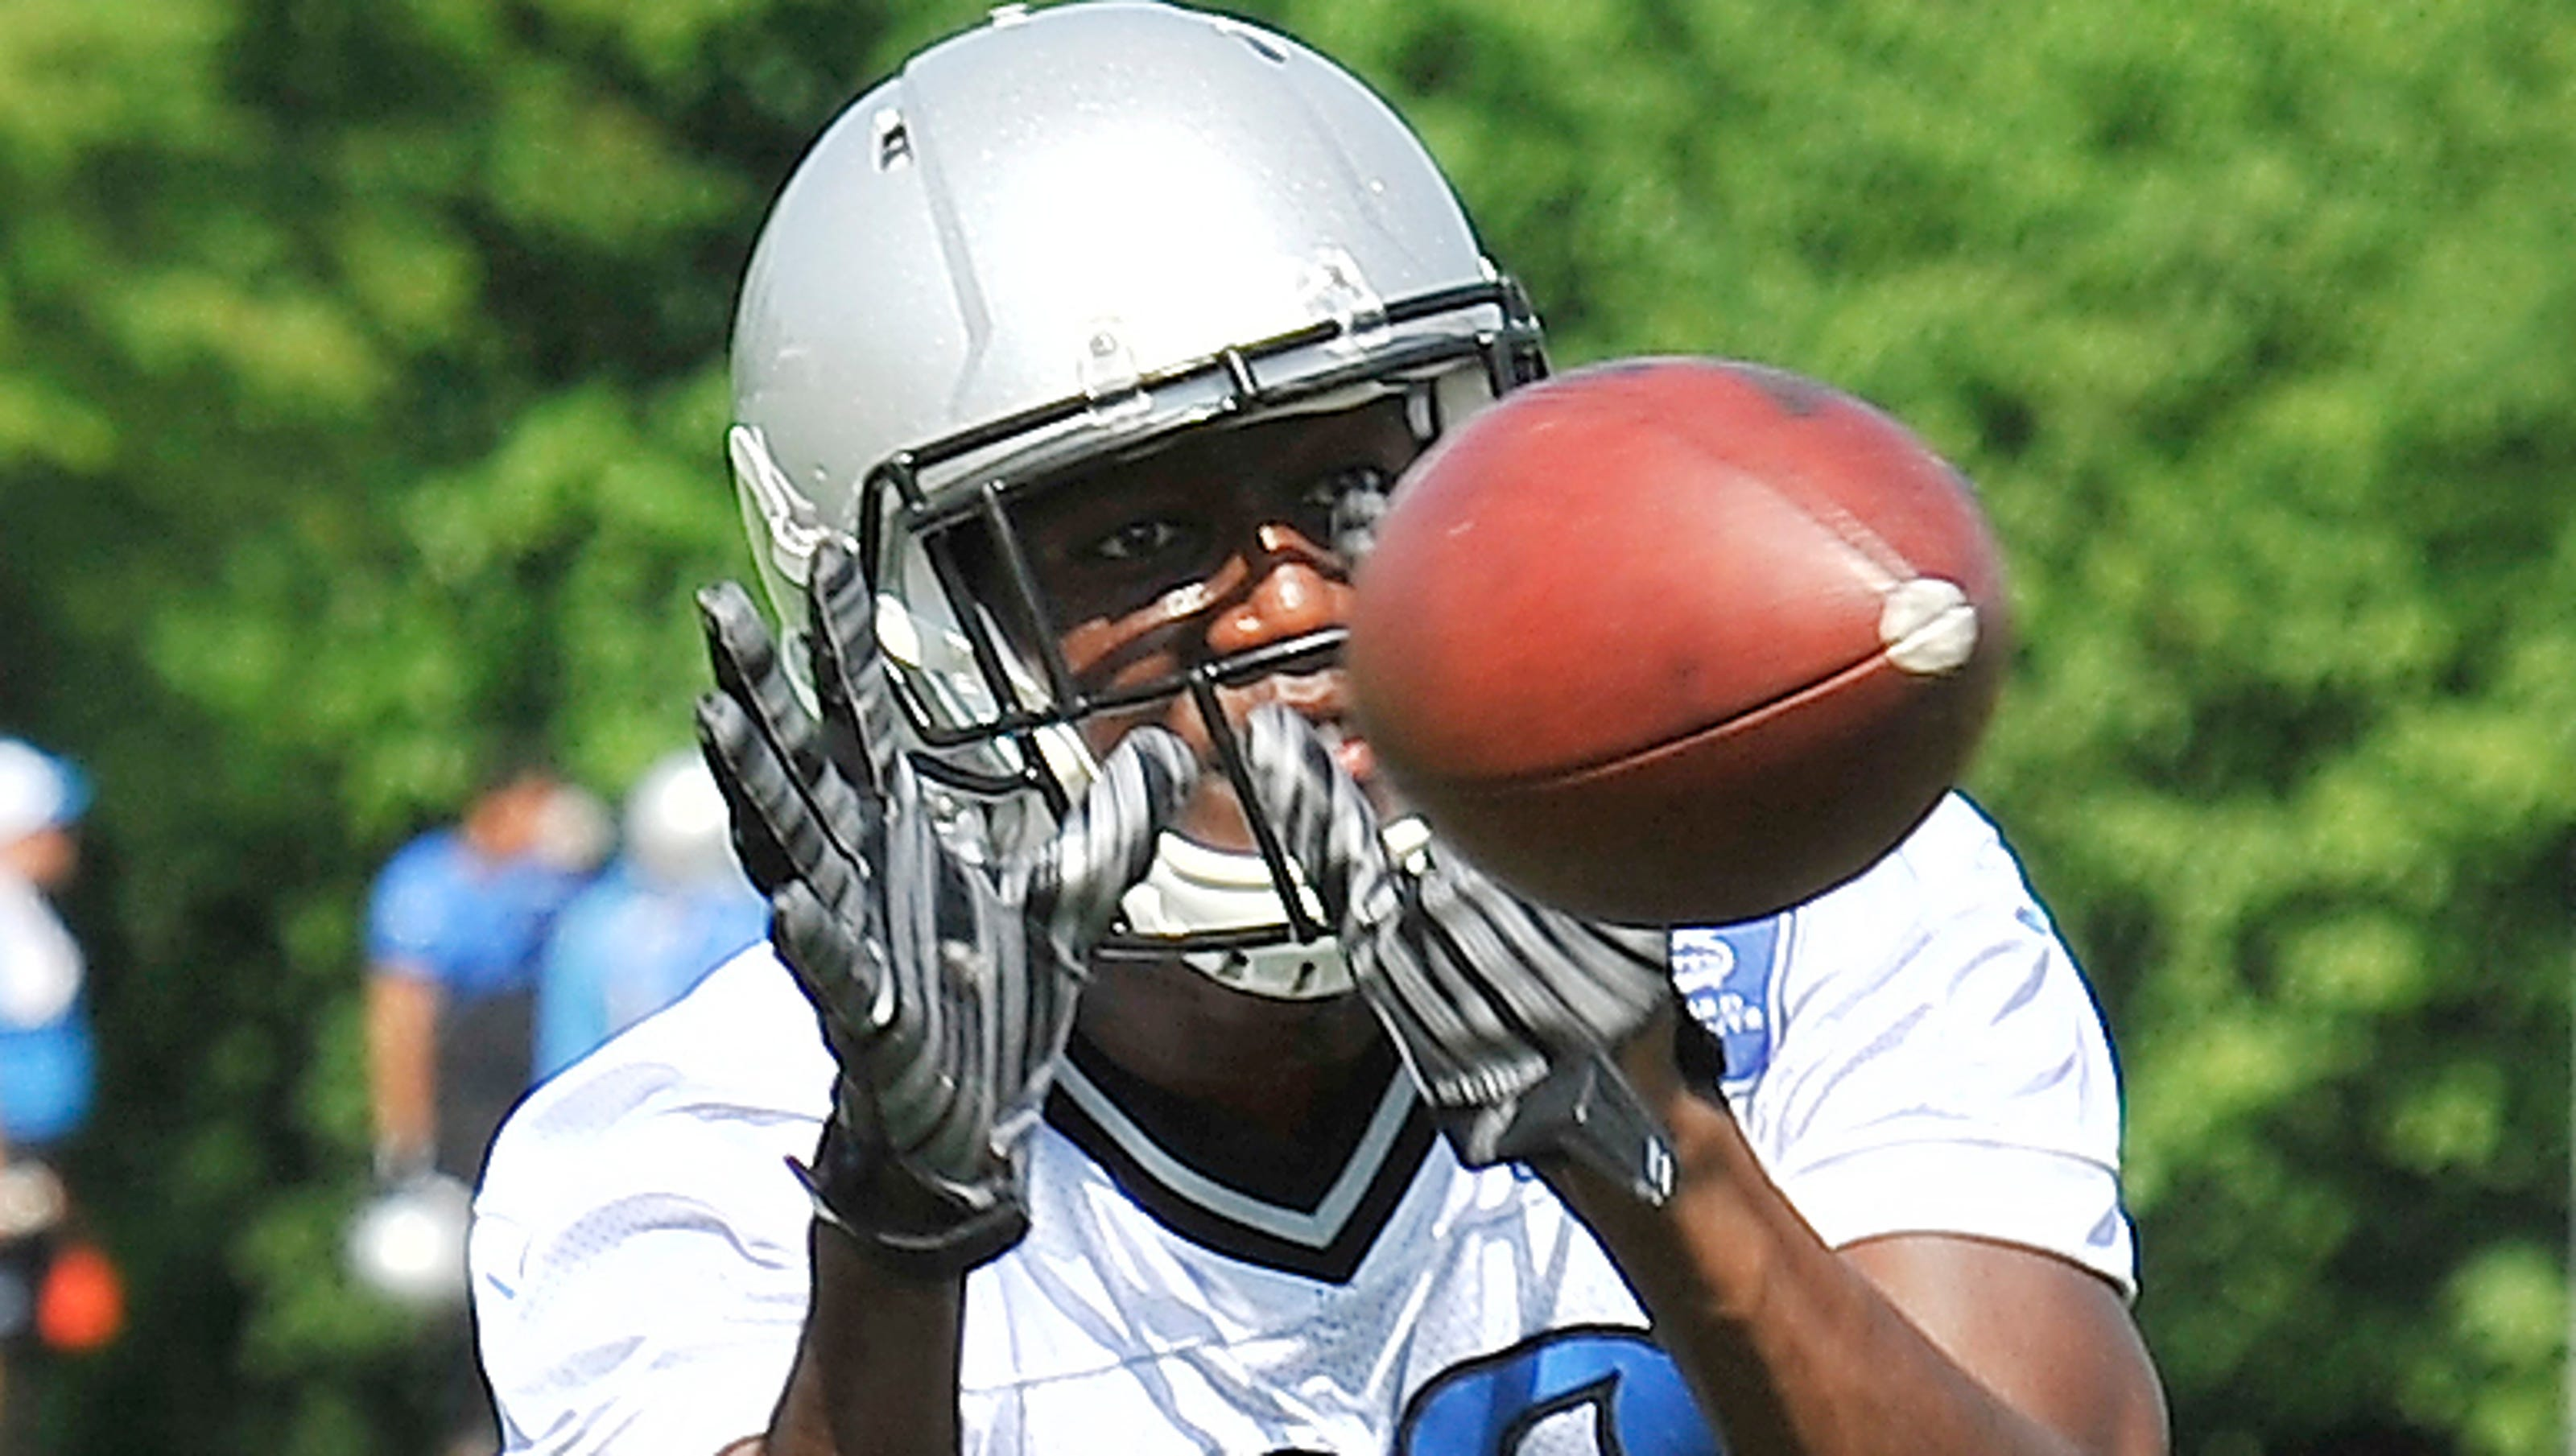 Lions trade Seisay to Seahawks for 2016 sixth-round pick